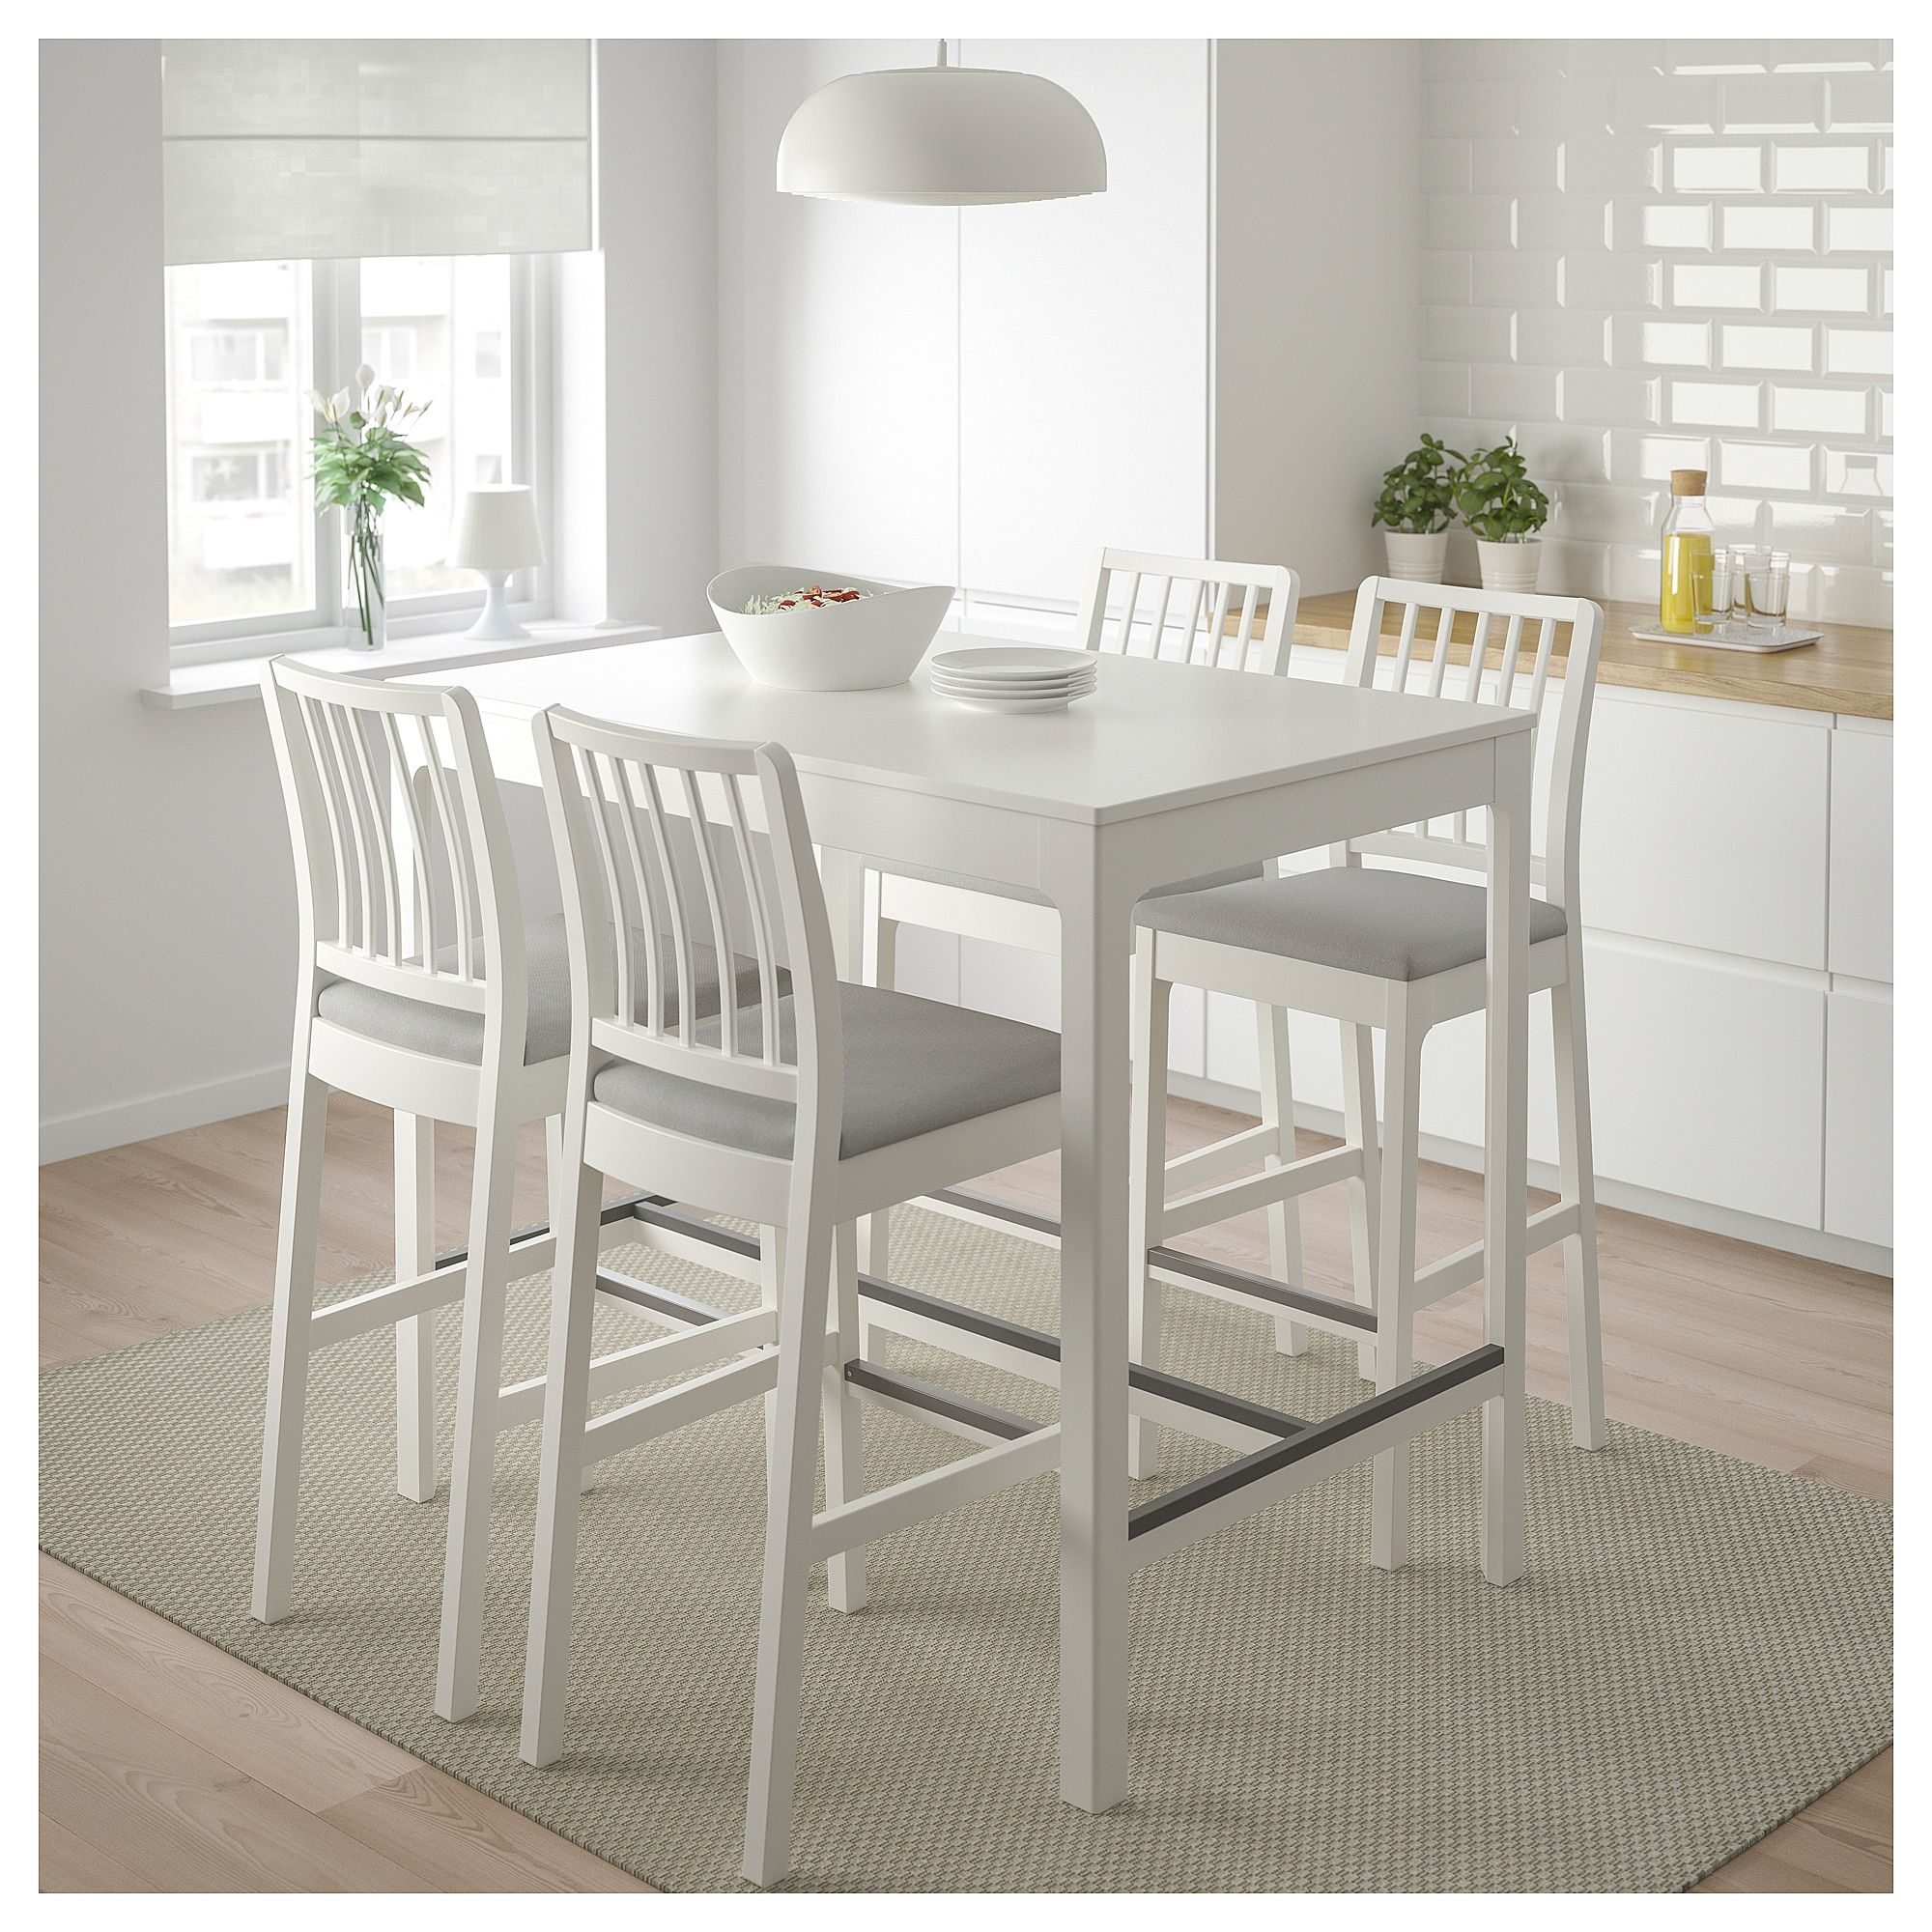 Ekedalen Bar Table White 47 1 4x31 1 2 120x80 Cm Wnetrza